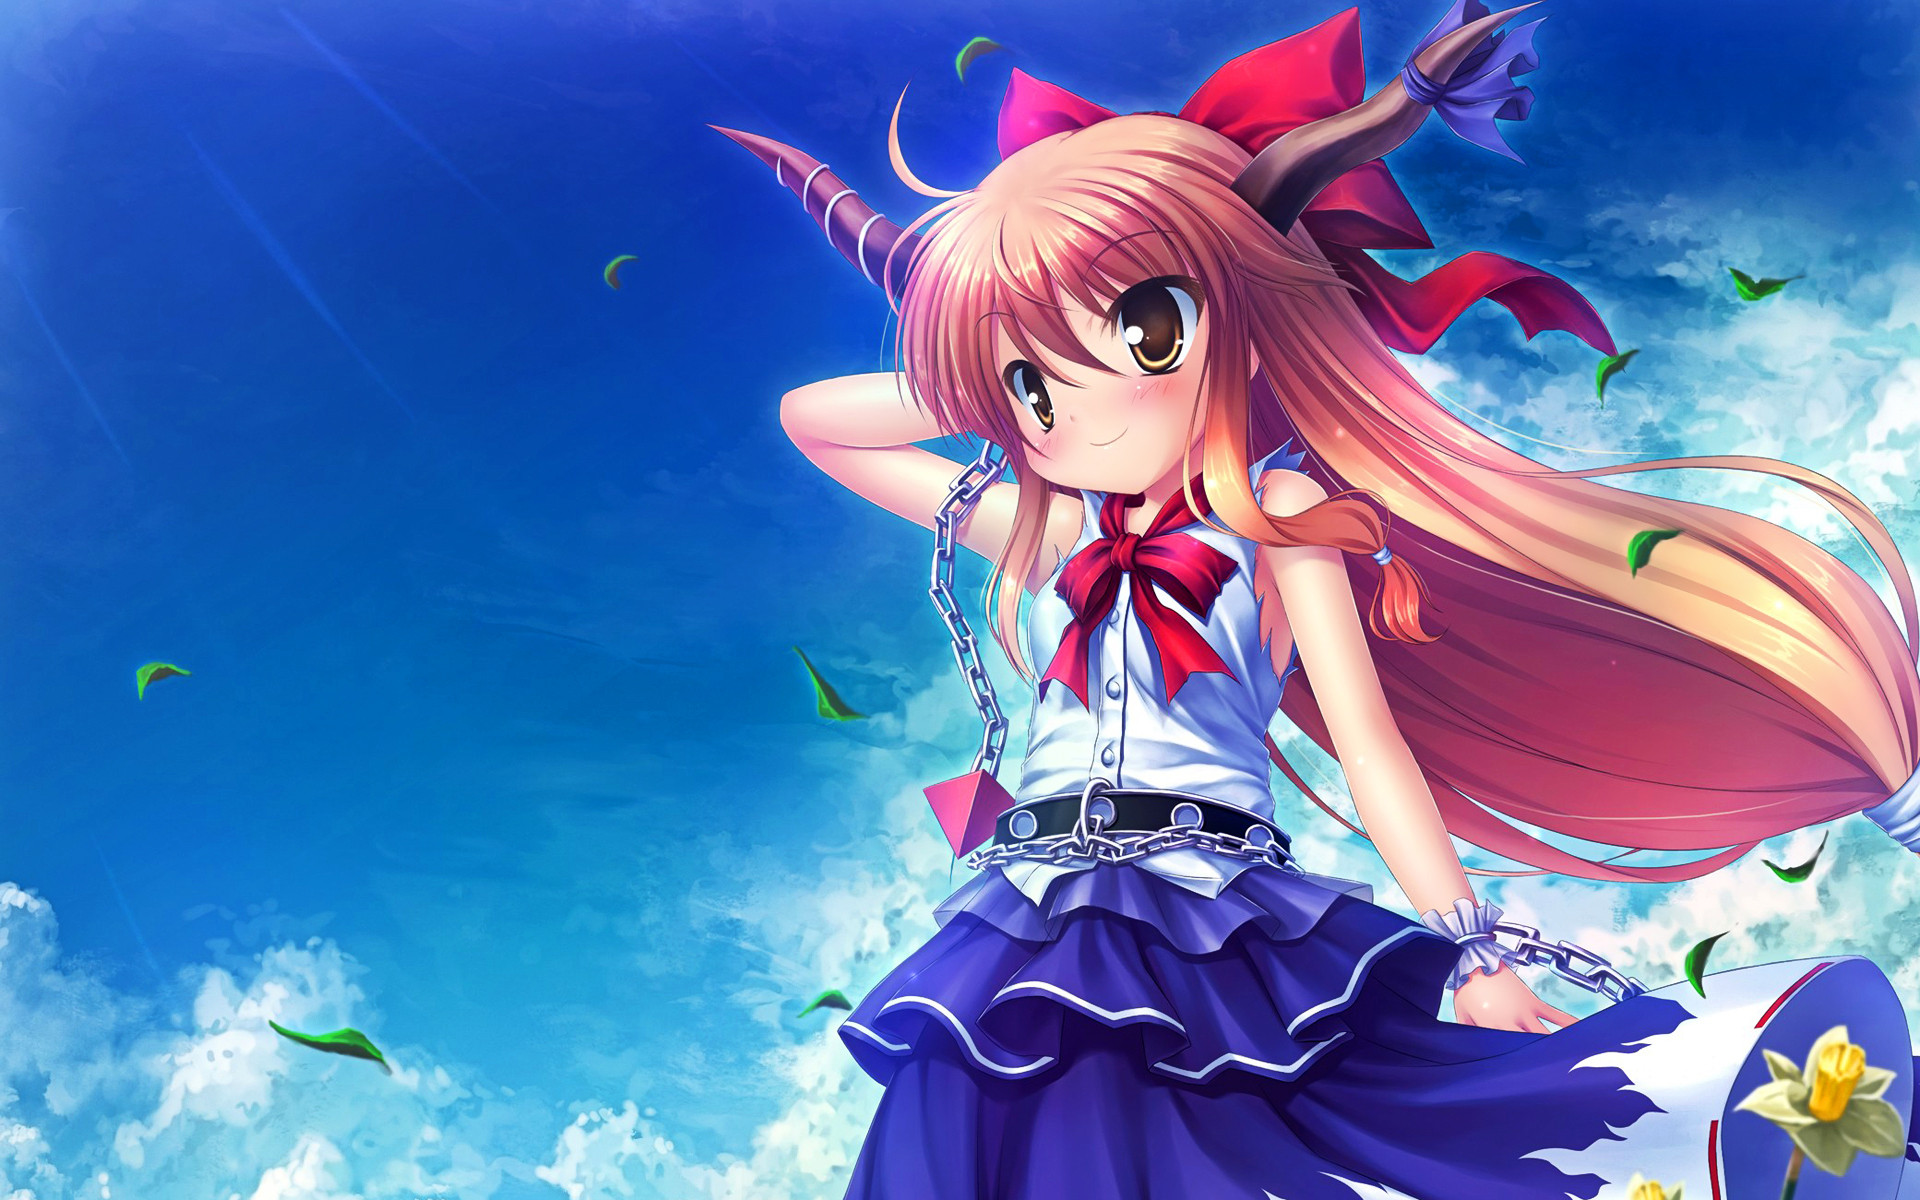 Cute Anime Wallpapers HD | PixelsTalk Net